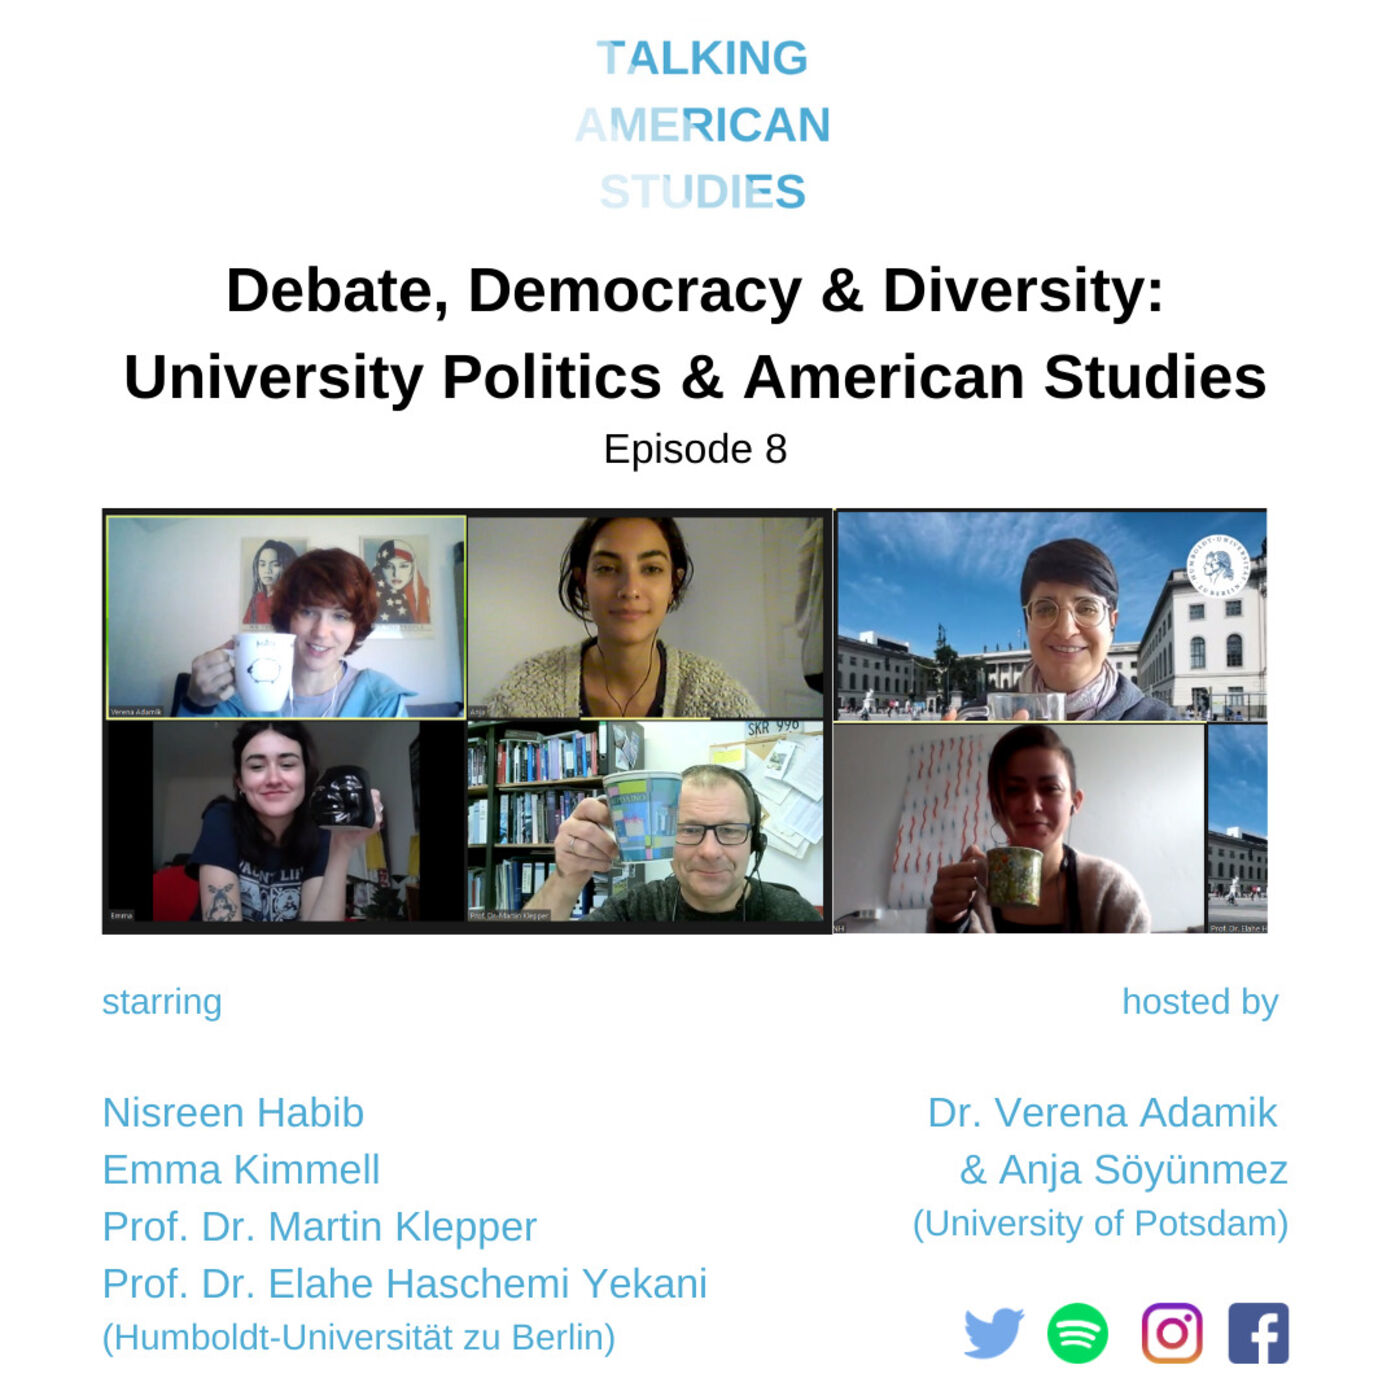 Debate, Democracy, Diversity: University Politics and American Studies; with E. Yekani, M. Klepper, E. Kimmell, N. Habib.